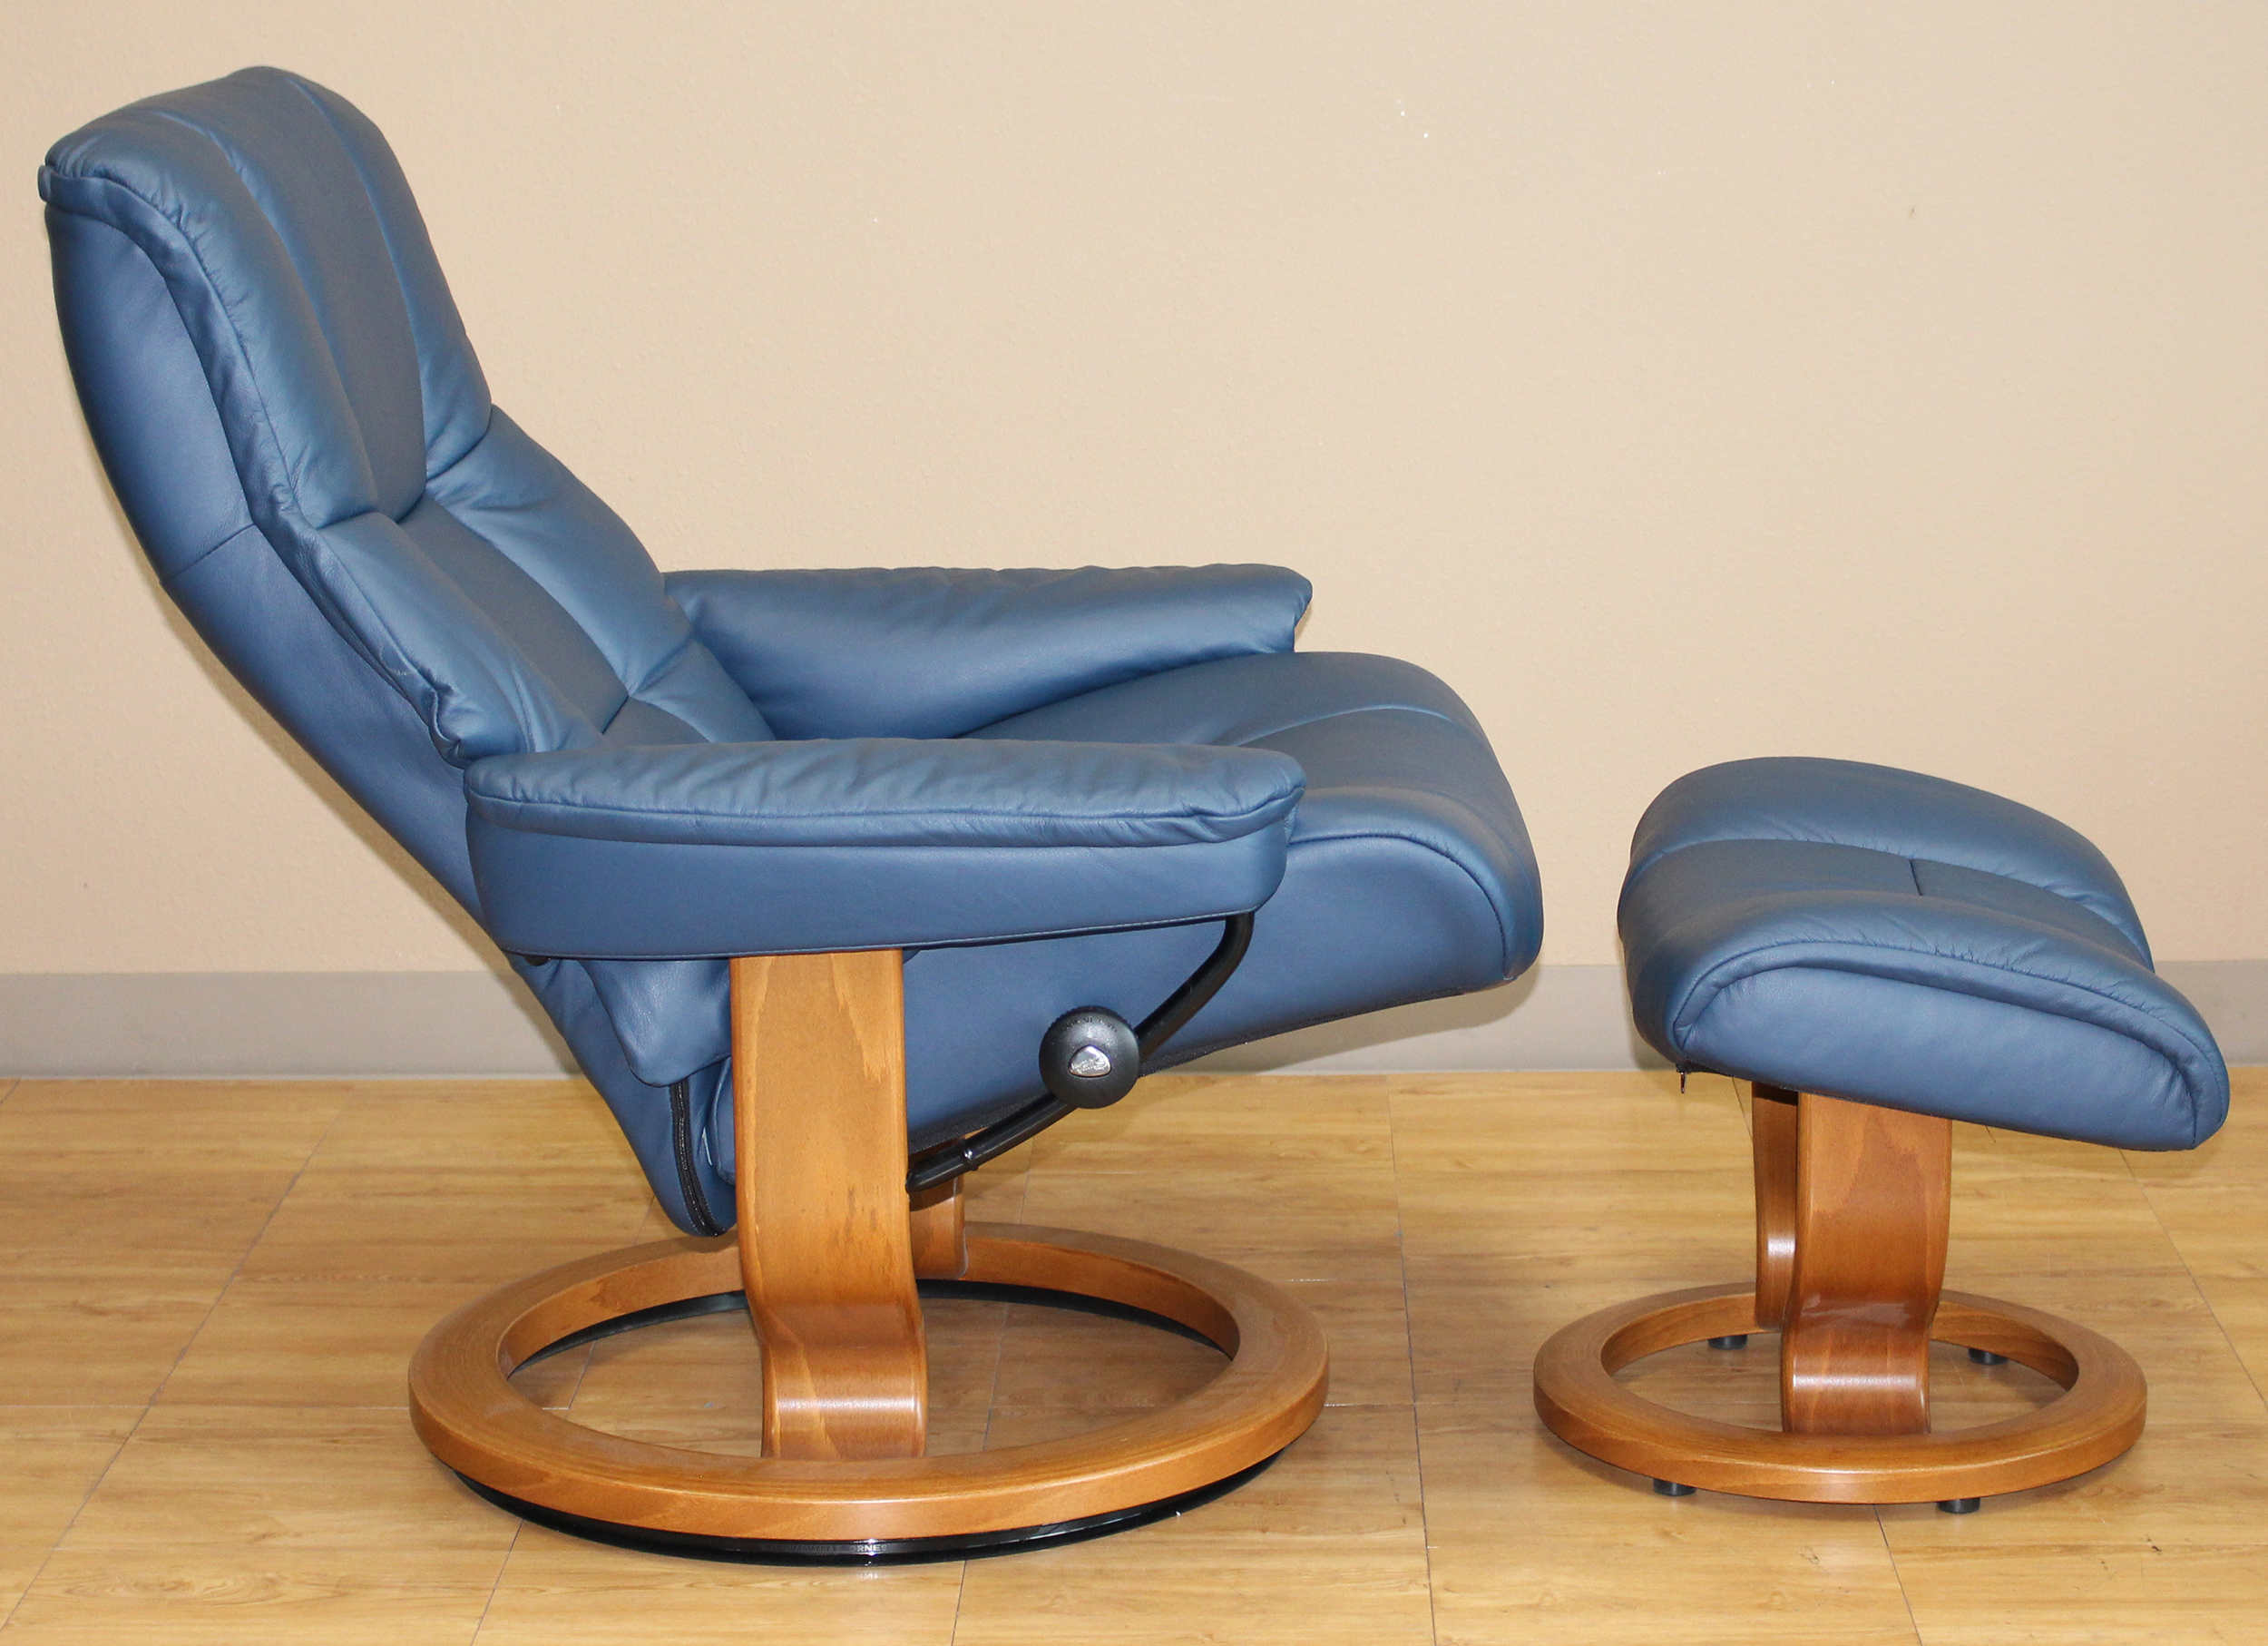 Stressless Mayfair Recliner Chair Paloma Oxford Blue Leather By Ekornes